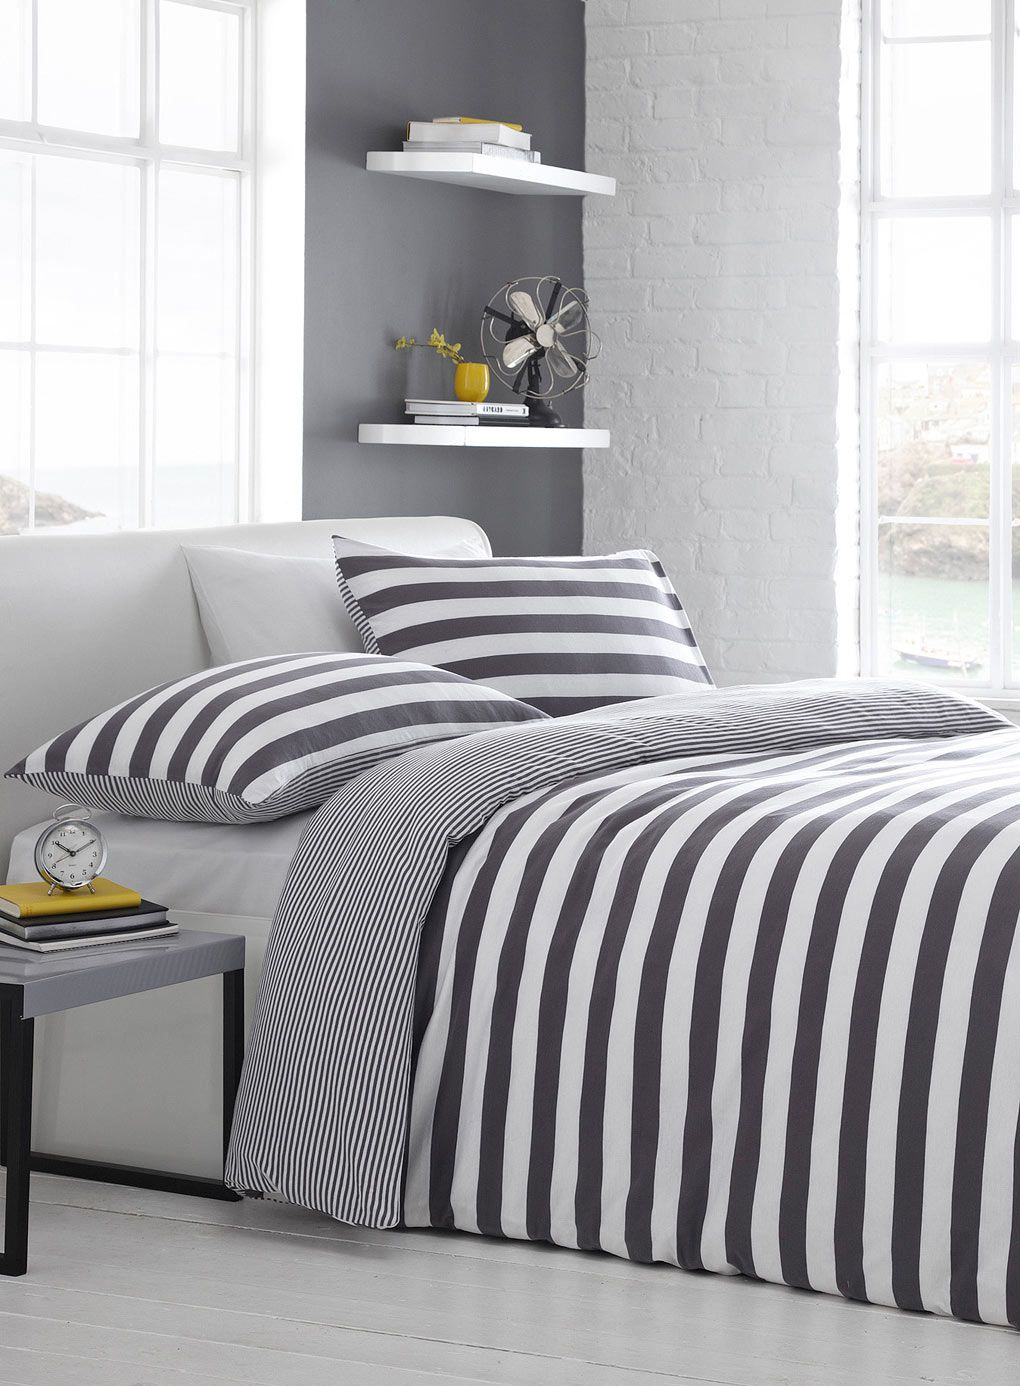 sets comforter and yet wall with designs covers combined white bedding striped simple grey exposed pillow stunning brick